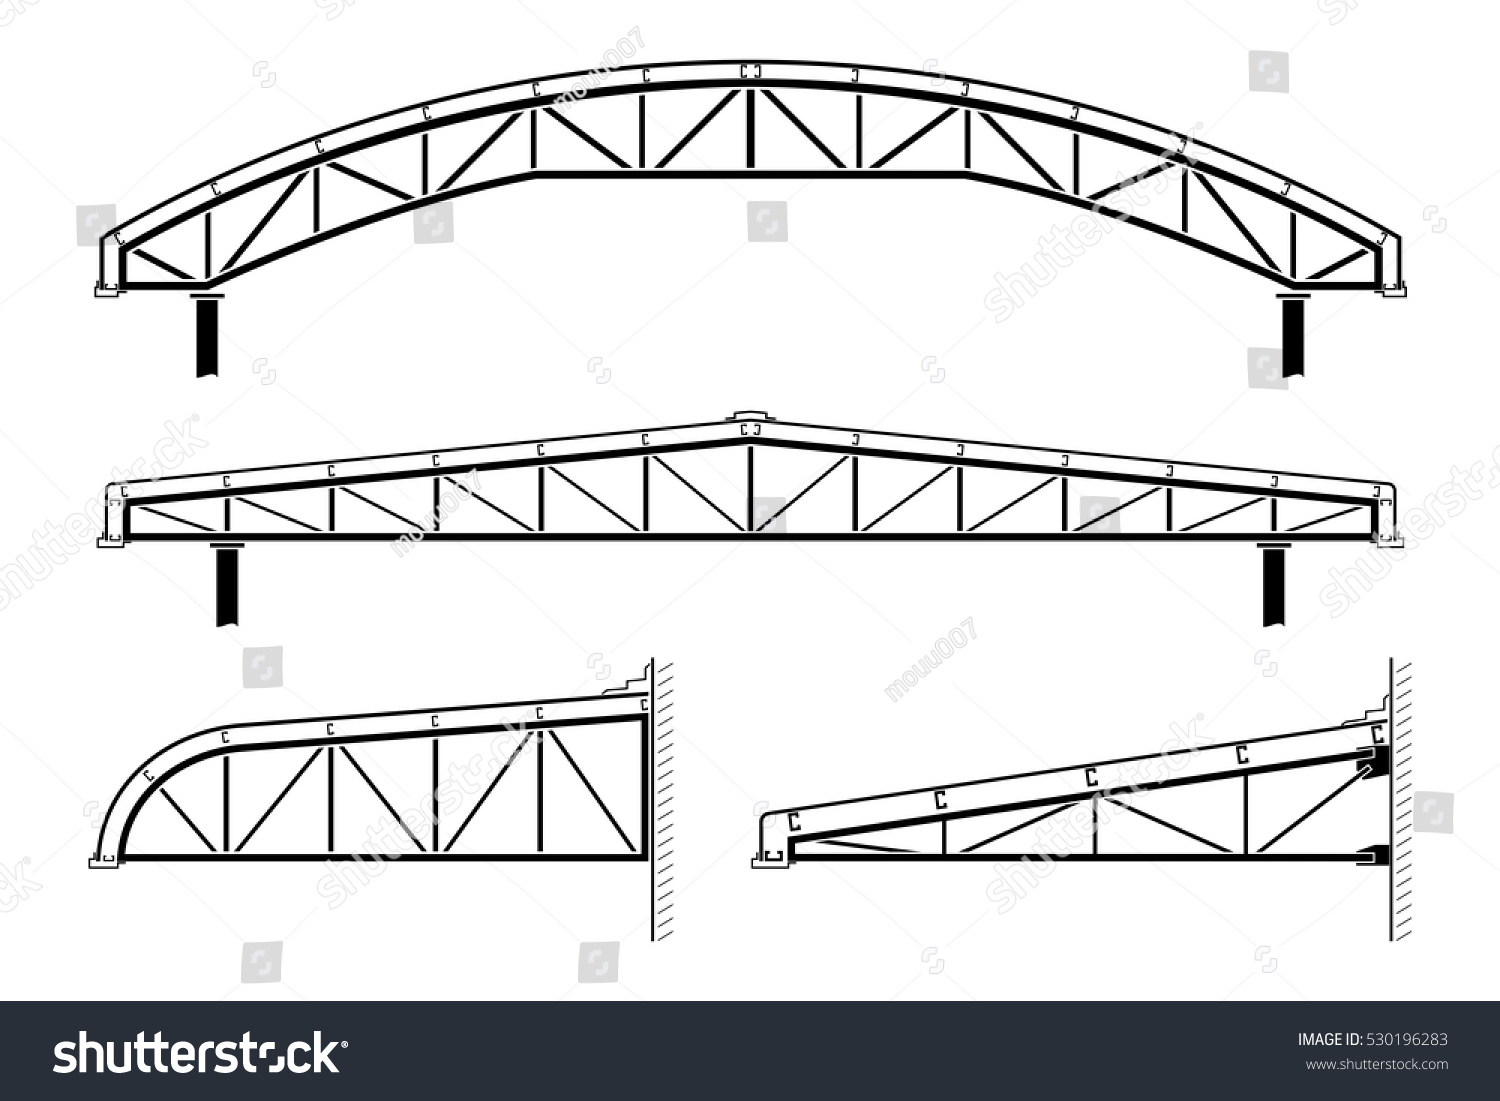 Roofing Building Silhouette Framingroof Truss Collection